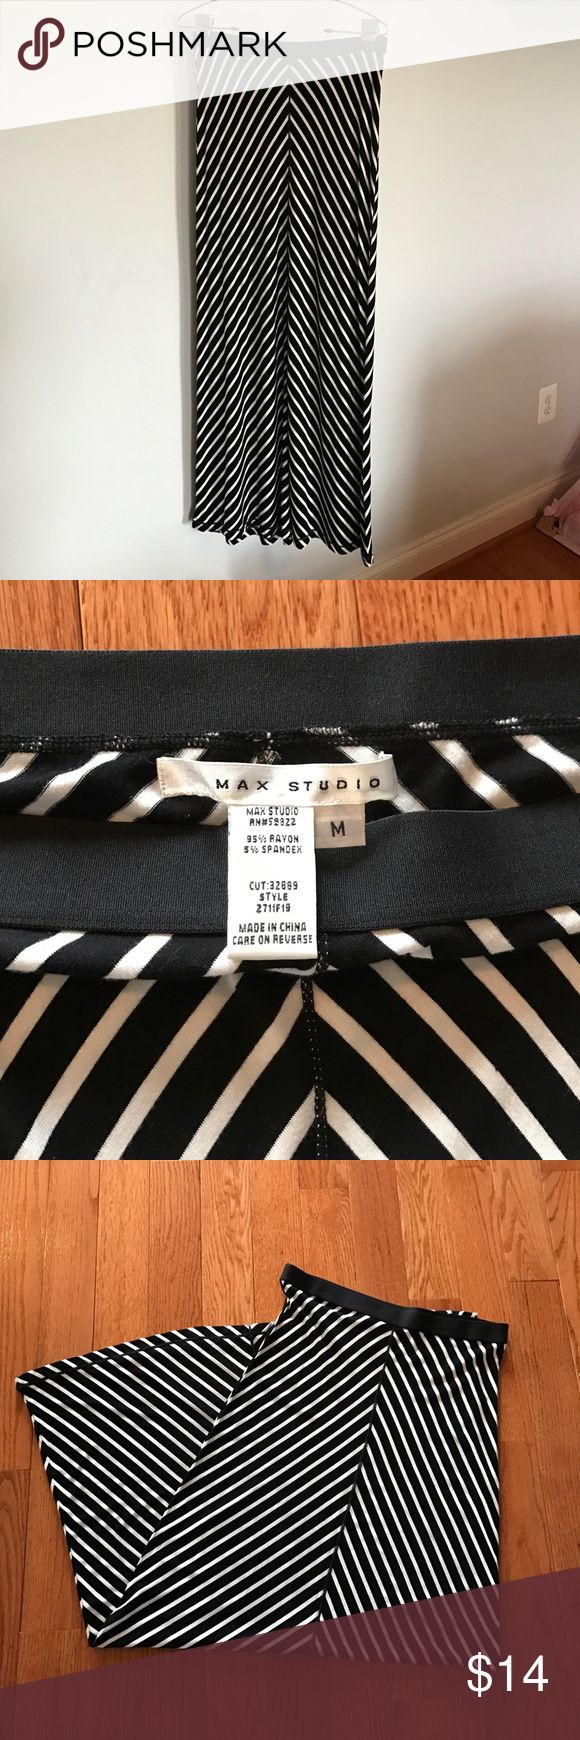 Max Studio Maxi Skirt Black and White Maxi Skirt.  Worn once in perfect condition. Max Studio Skirts Maxi